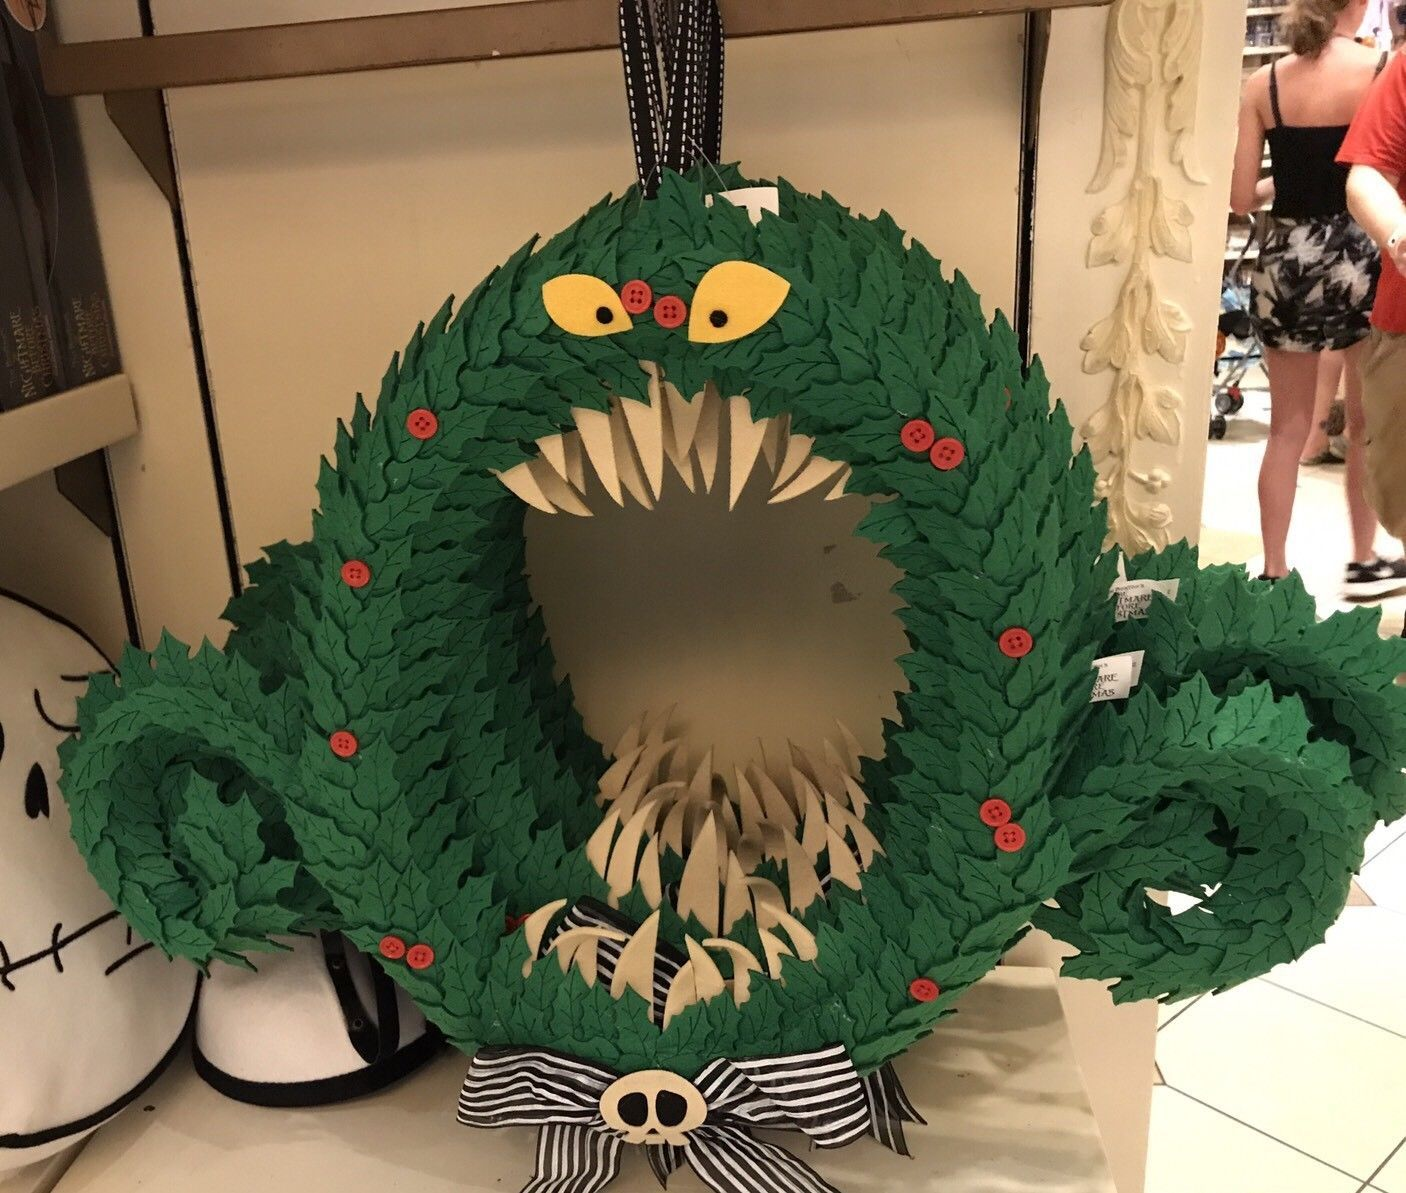 59 99 disney parks nightmare before christmas haunted wreath rh pinterest com